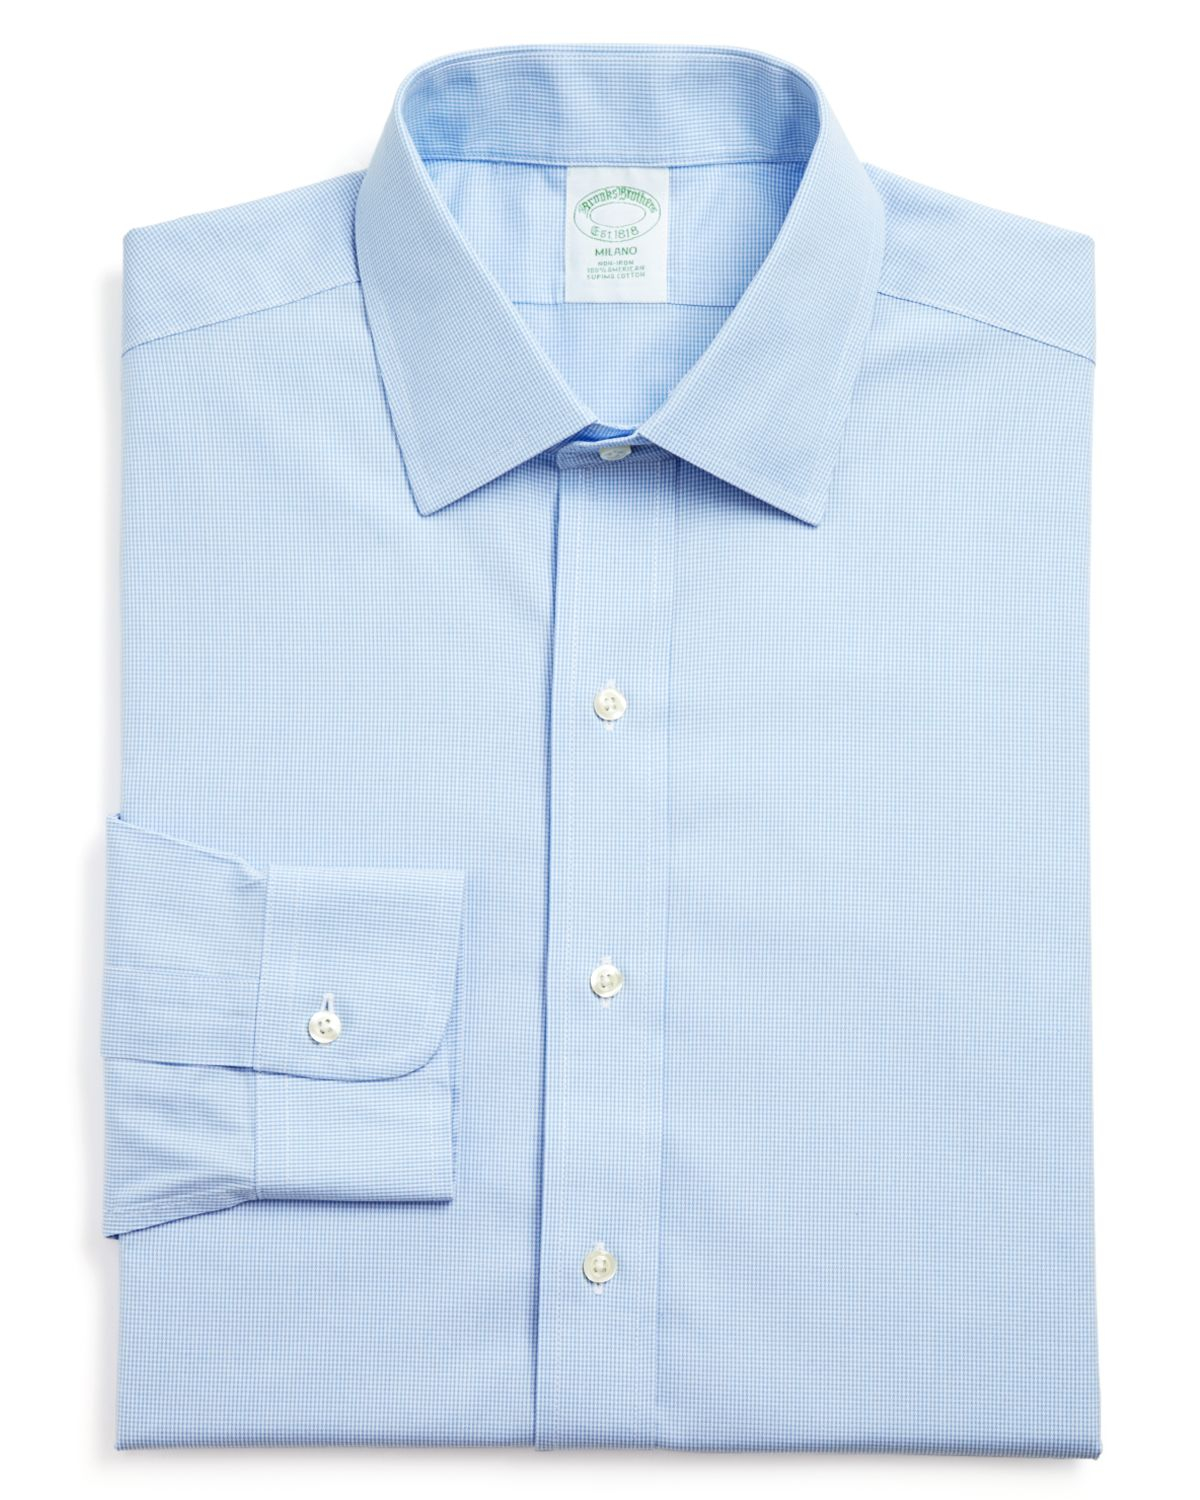 Brooks brothers micro houndstooth non iron dress shirt Brooks brothers shirt size guide